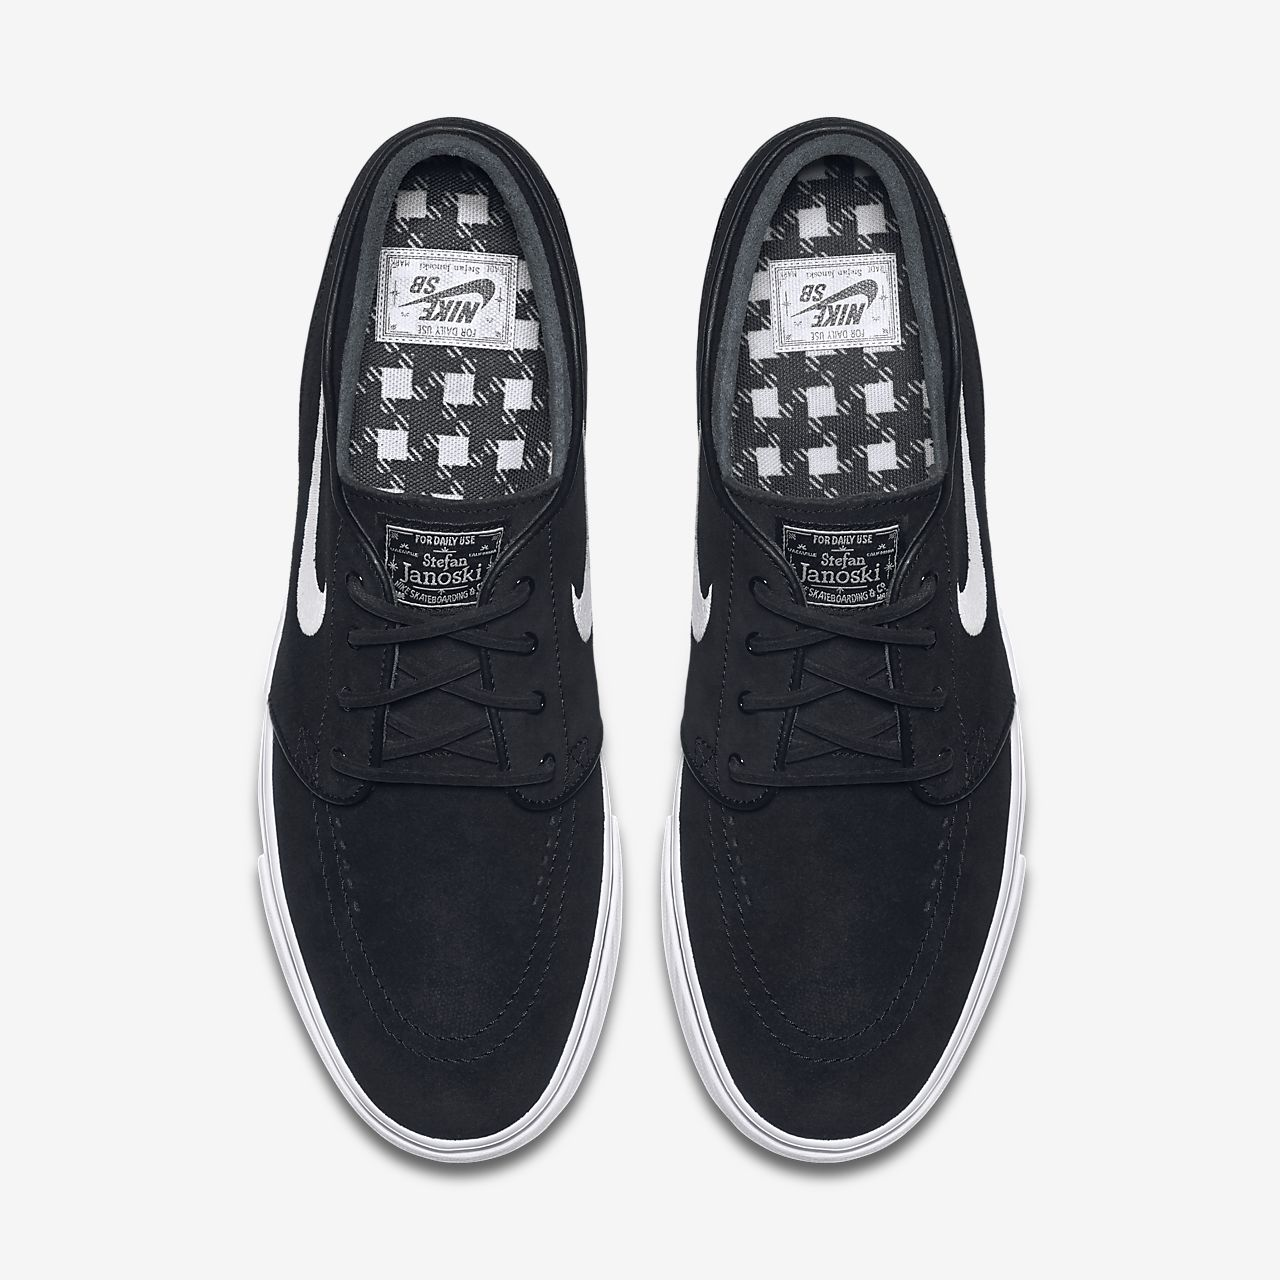 check out 216e9 8e102 ... Nike SB Zoom Stefan Janoski OG Men s Skate Shoe